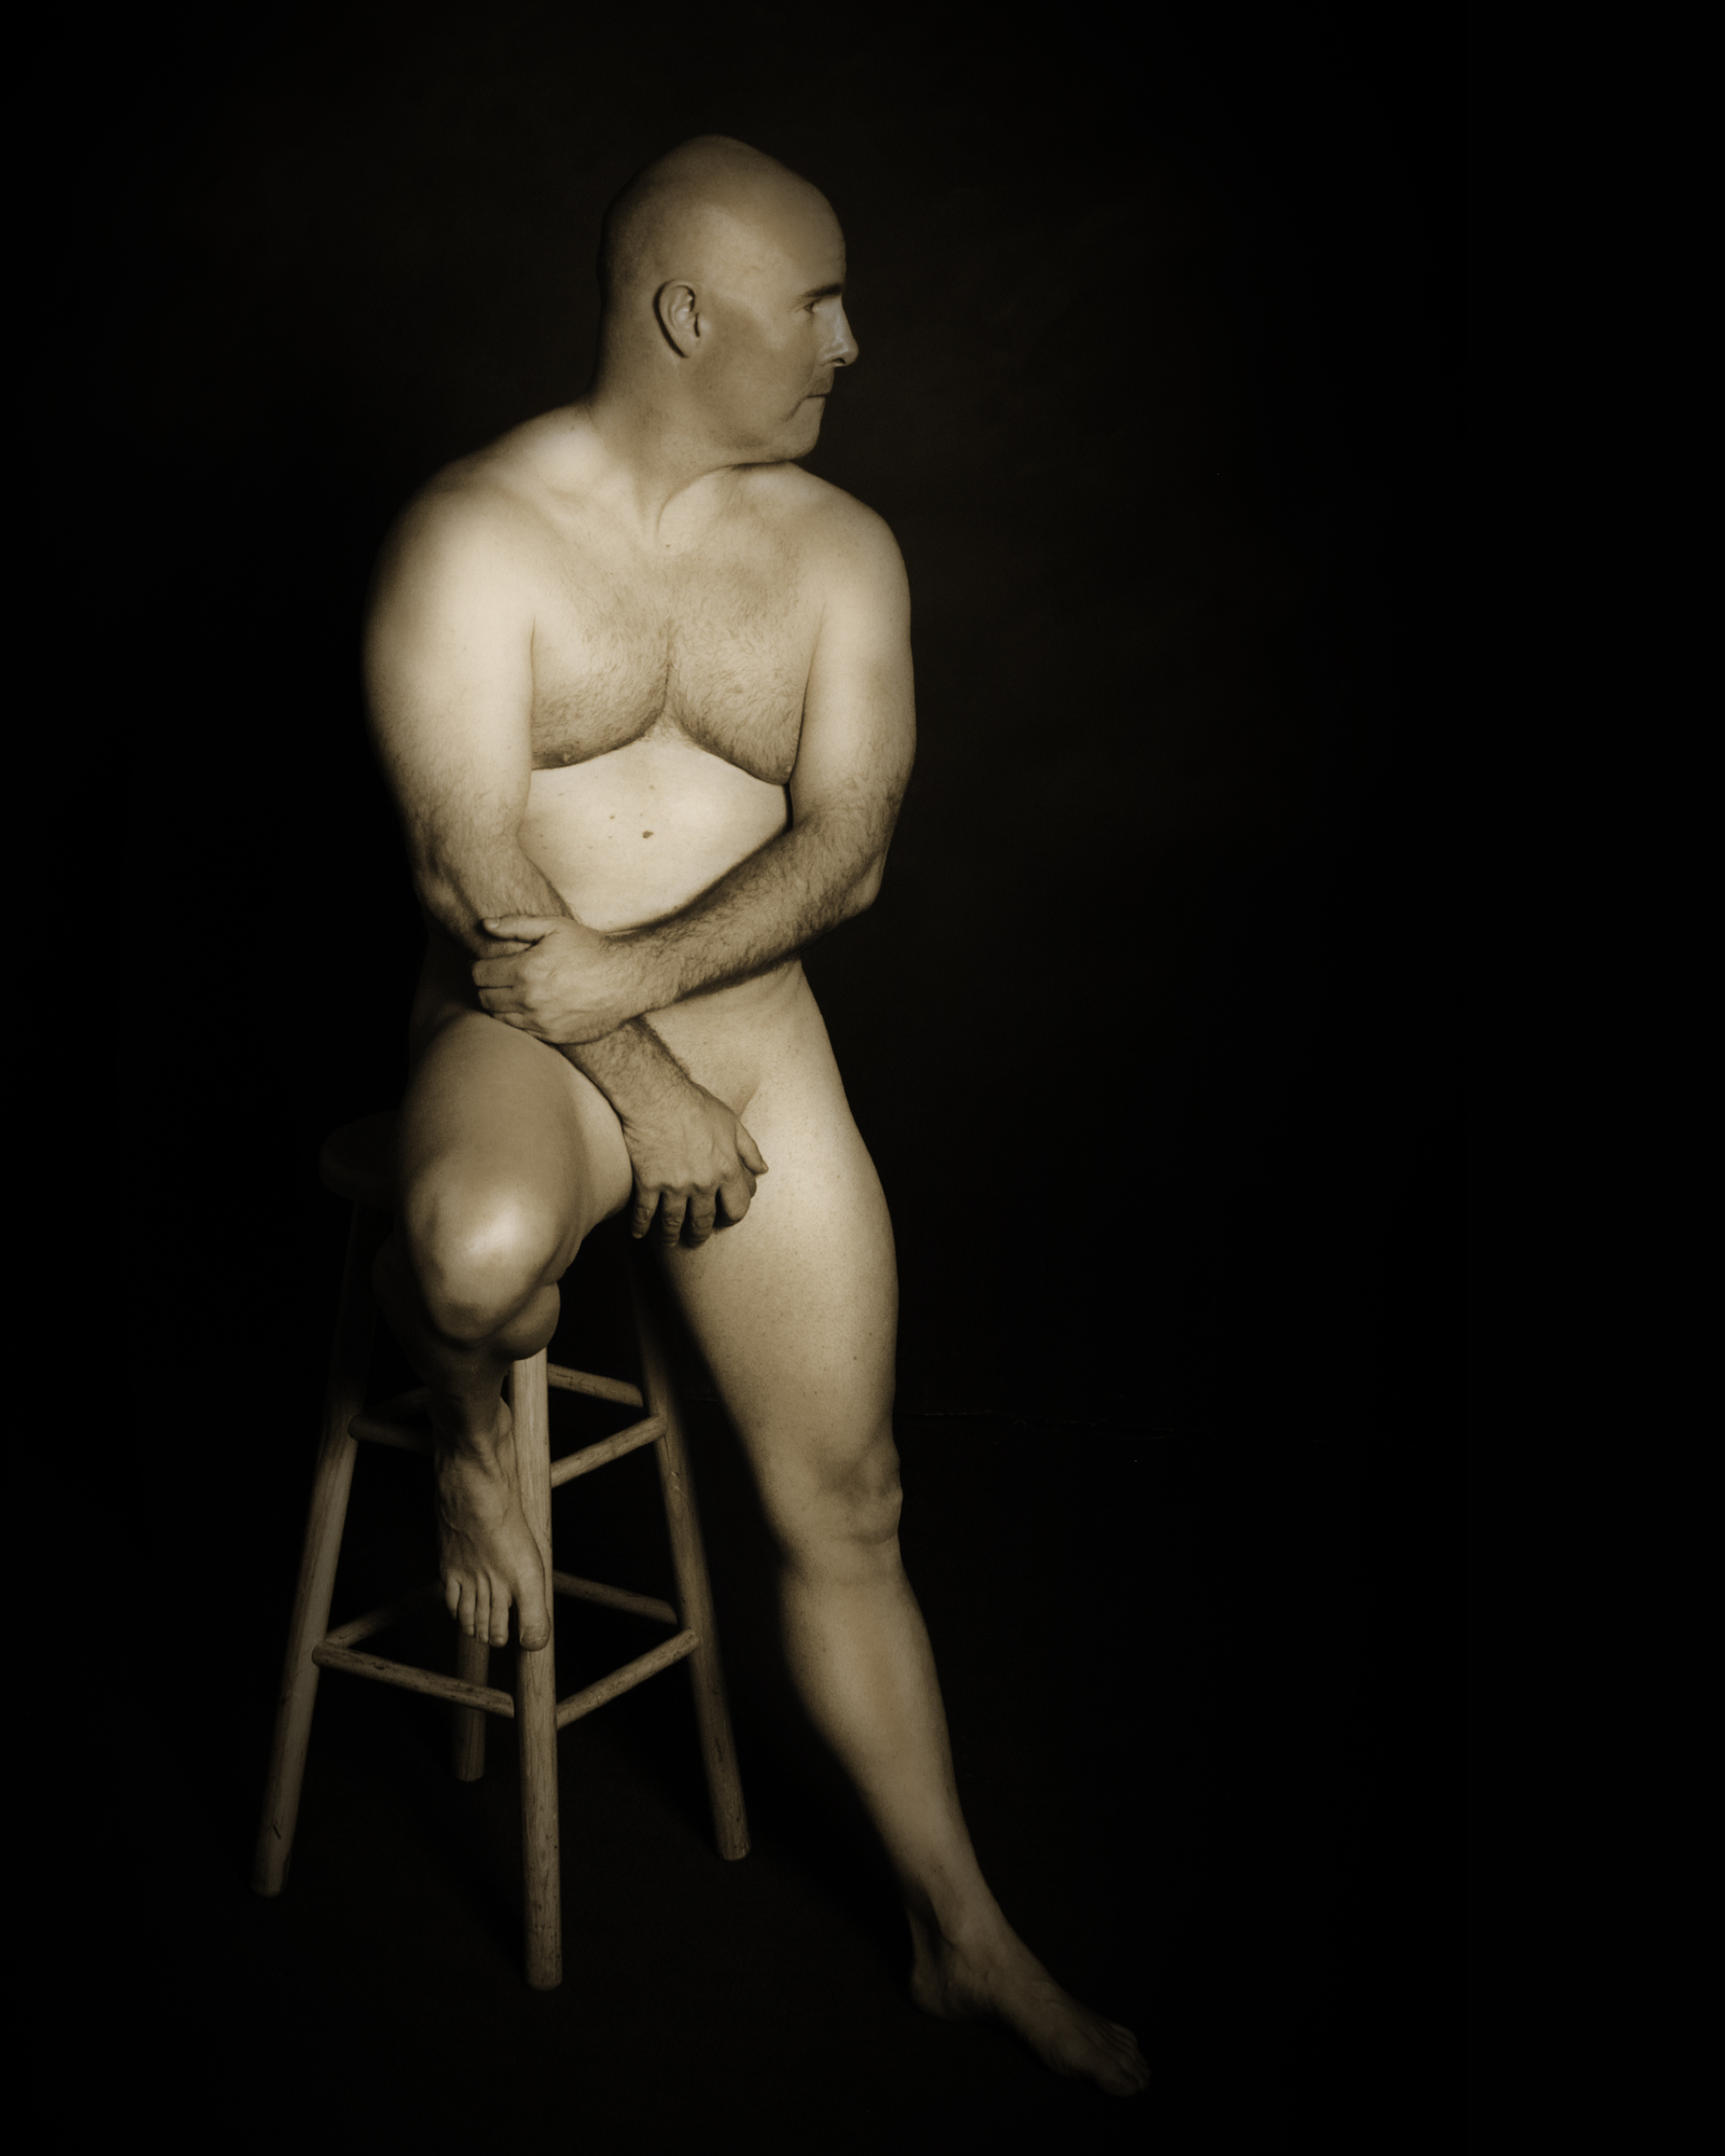 My website is currently down and I am focusing on the nude male, the ...: https://mistressjstudios.wordpress.com/tag/nude-male-photography